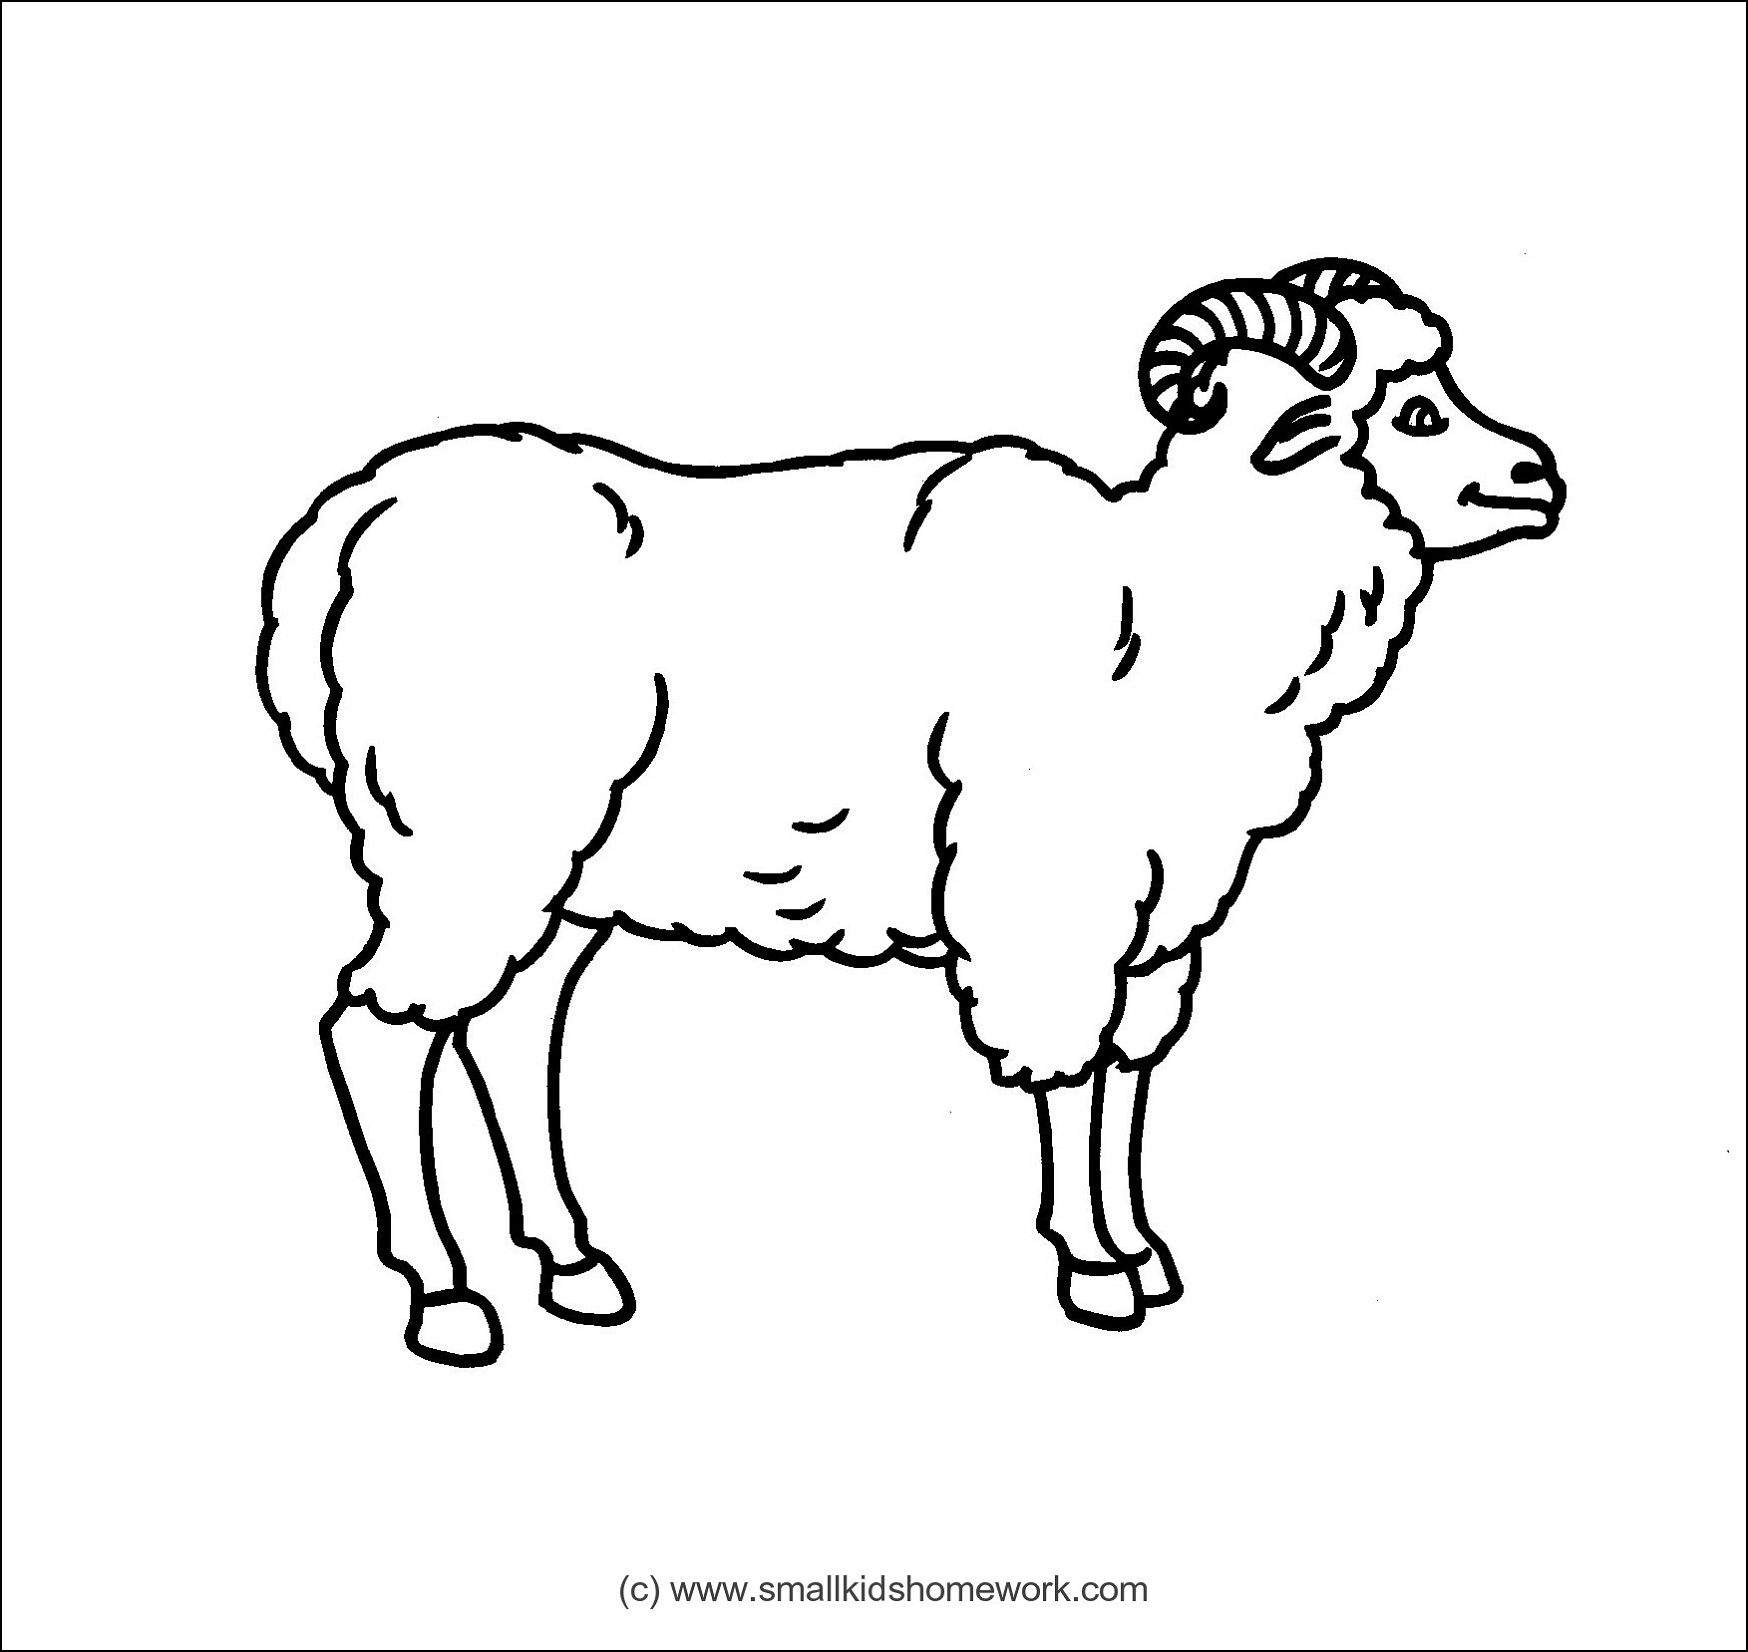 1748x1652 Sheep Outline And Coloring Picture With Interesting Facts